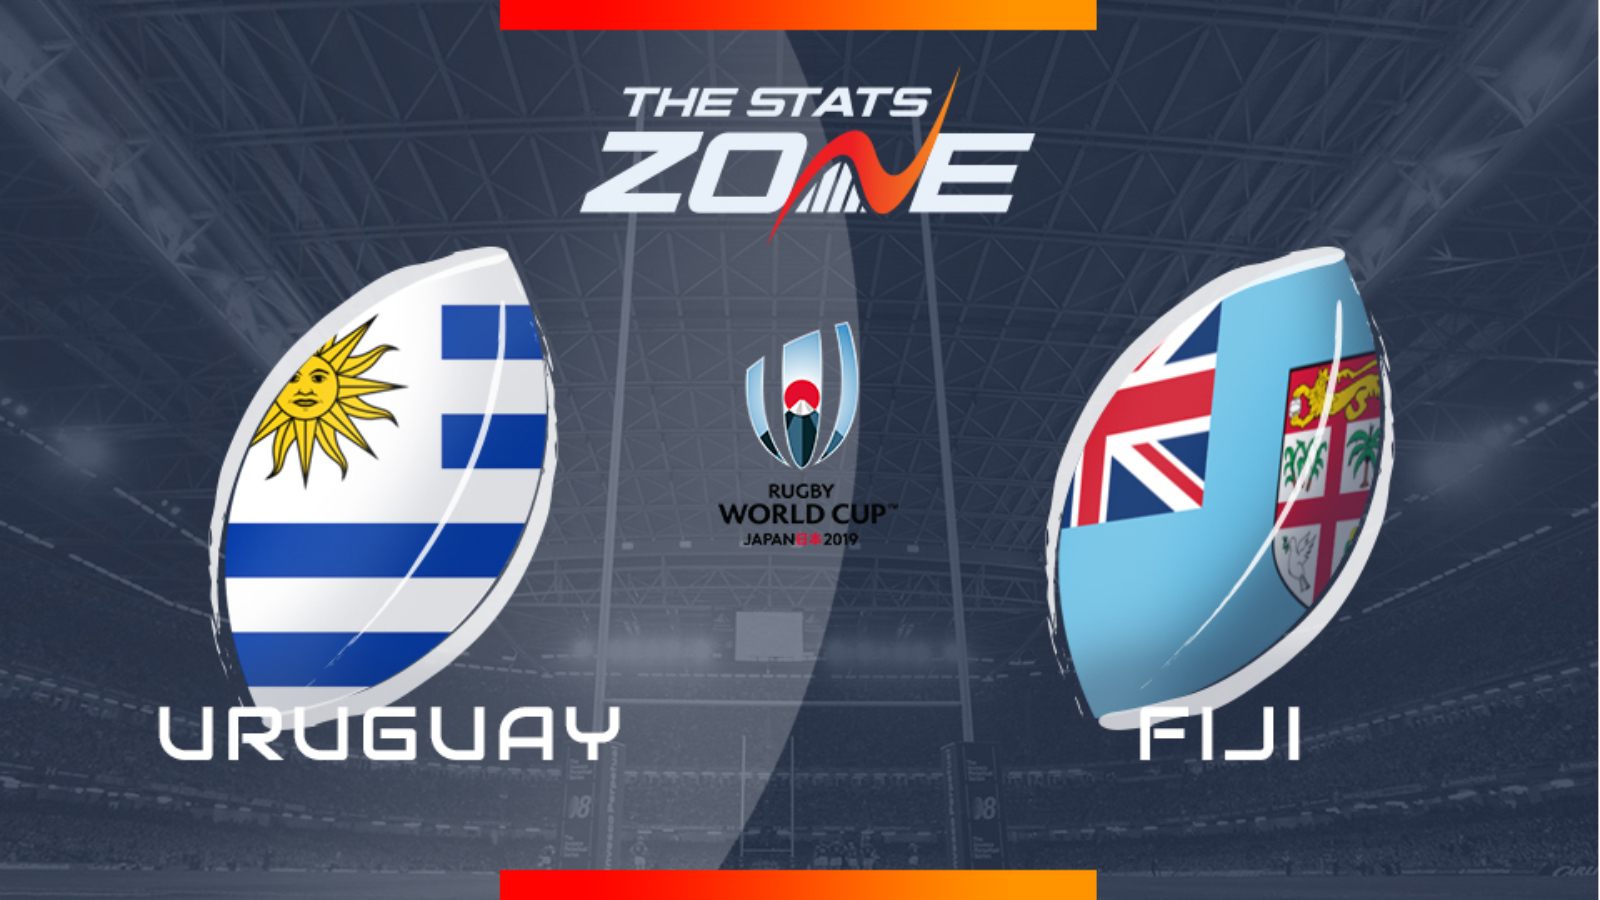 Fiji expected to be too good for Uruguay in Rugby World Cup